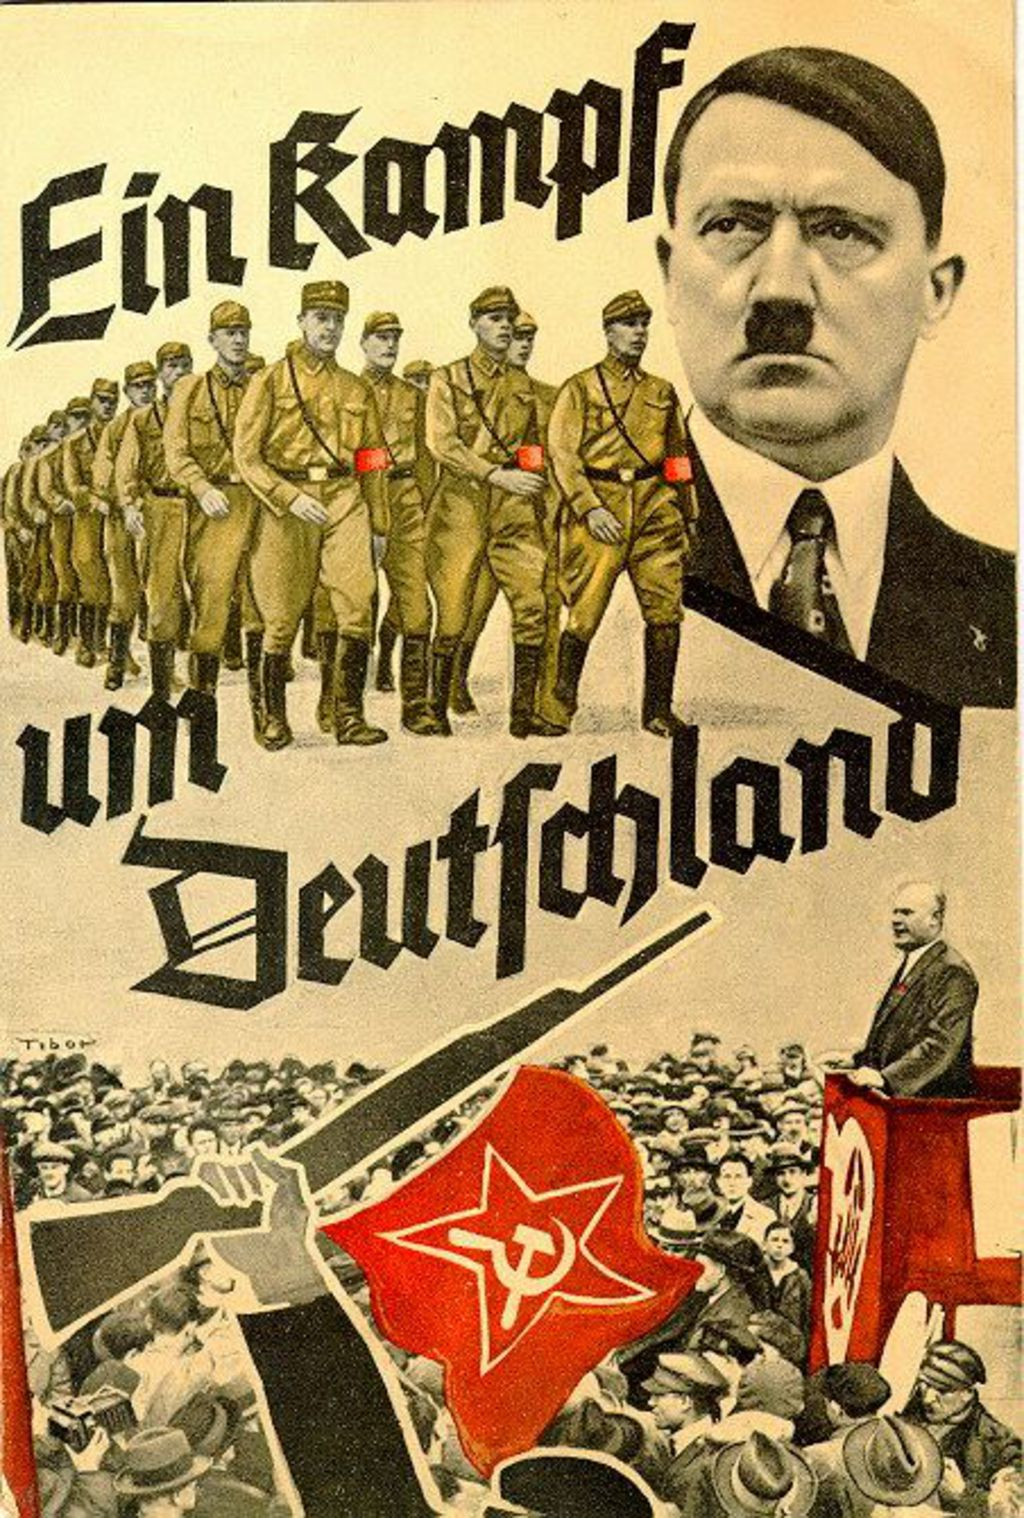 propaganda anti adolf hitler essay Adolf hitler and the jews research papers discuss hitler's hatred toward the jews and adolf hitler's death - adolf hitler and the jews research papers discuss hitler's nazi germany's negative anti-semitism propaganda research papers examine how influential the propaganda was on the.